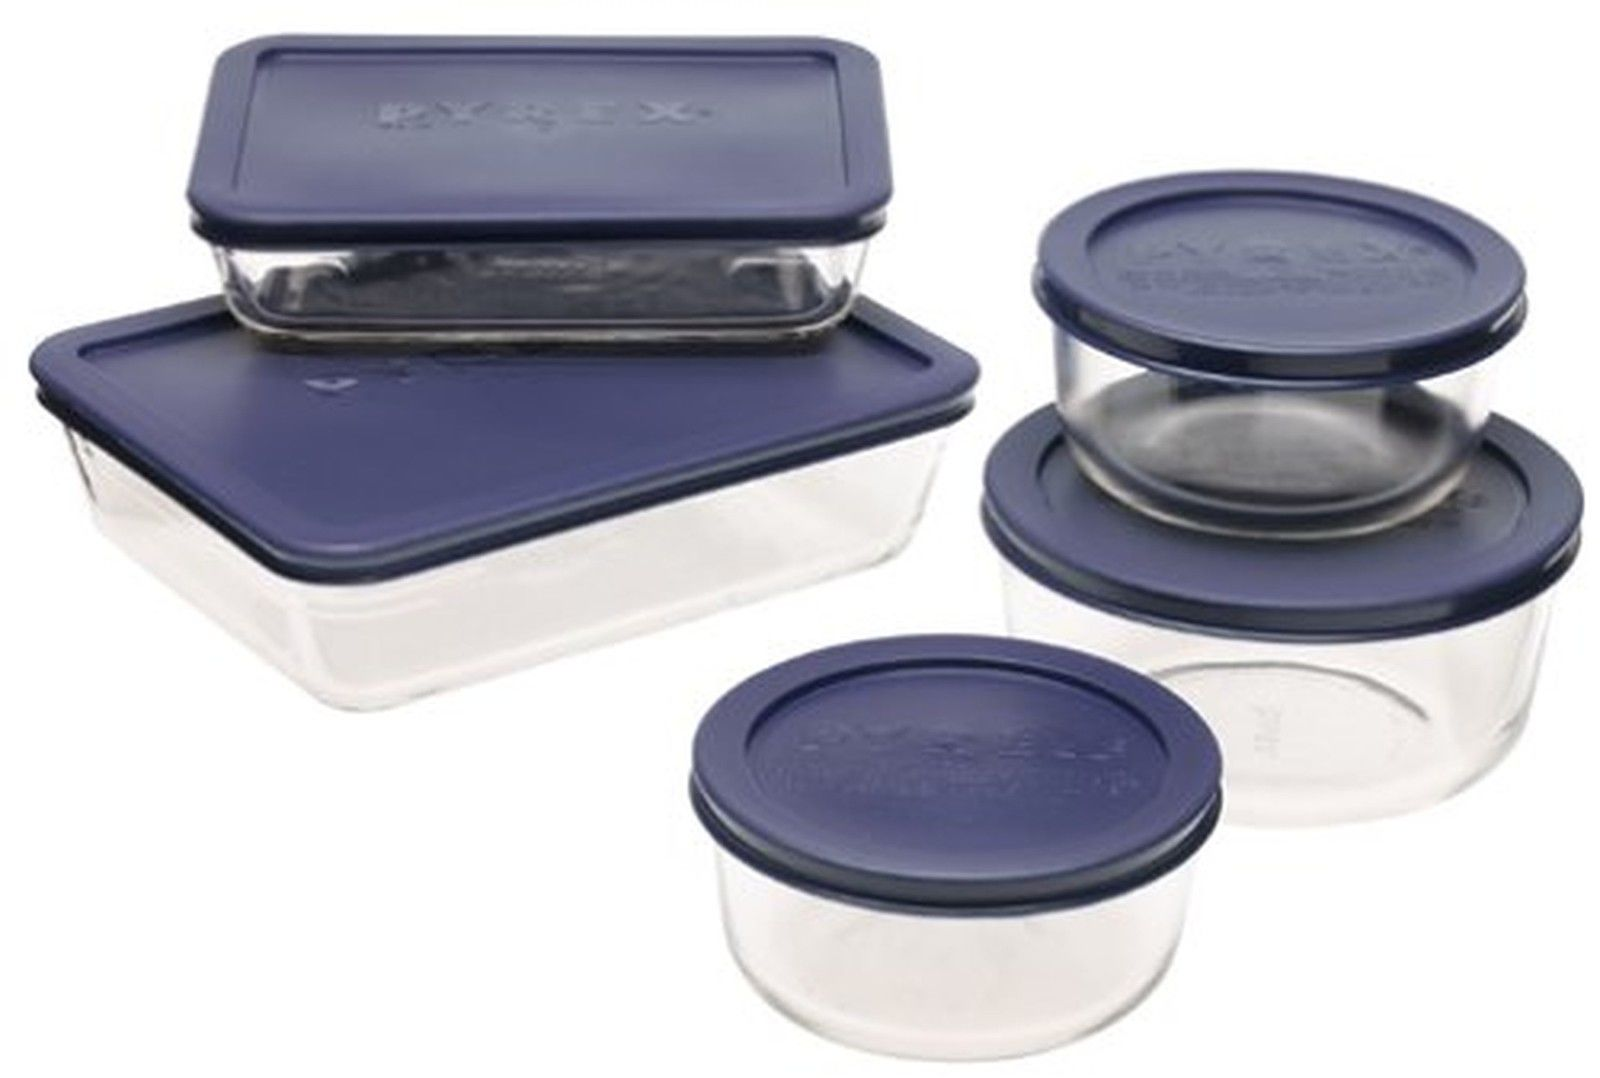 Pyrex Simply Store 10-Piece Glass Food Storage Set with Blue Lids 1